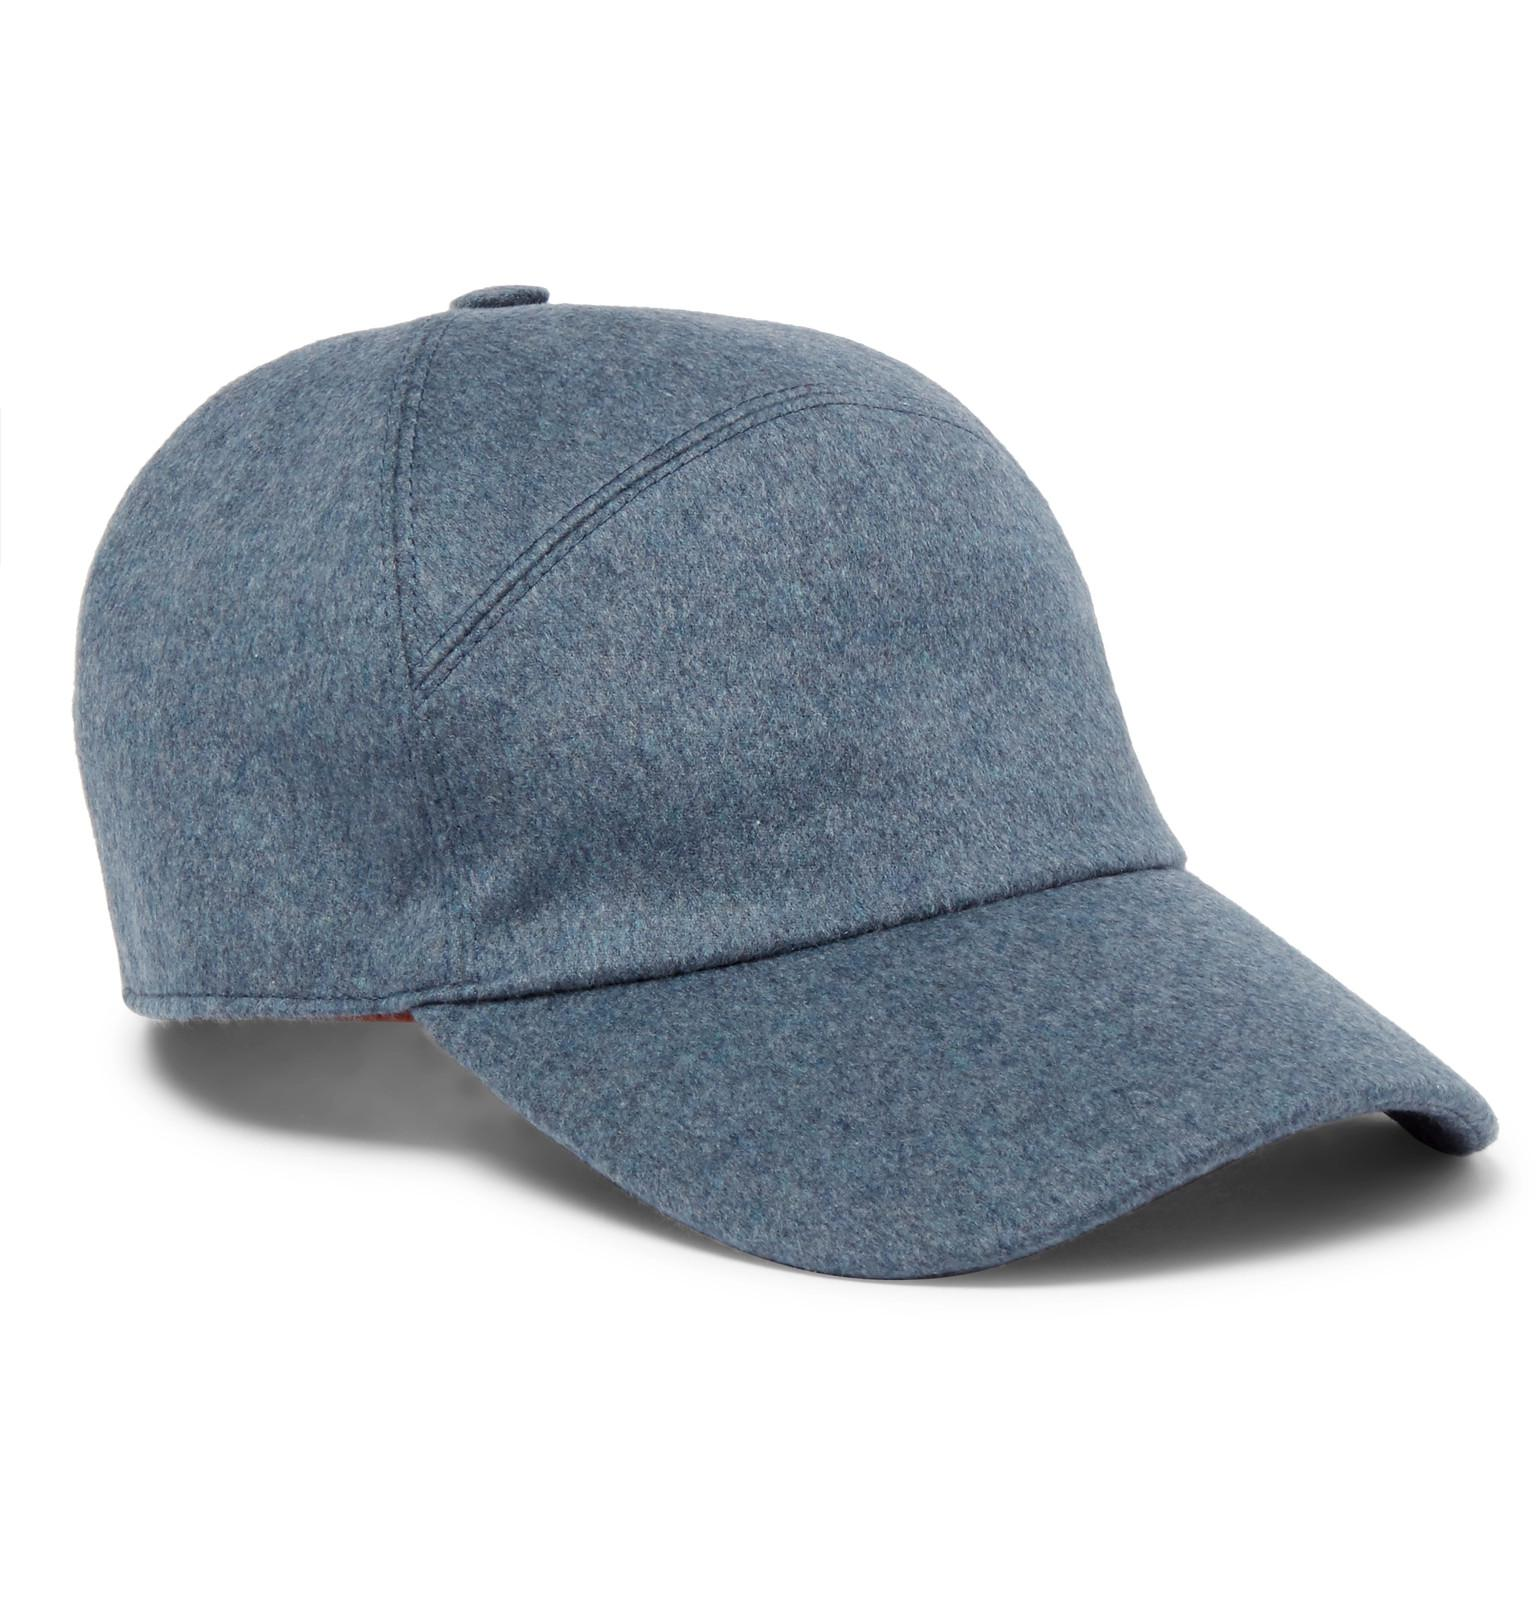 9c3adc29402 Loro Piana Storm System Baby Cashmere Baseball Cap in Blue for Men ...